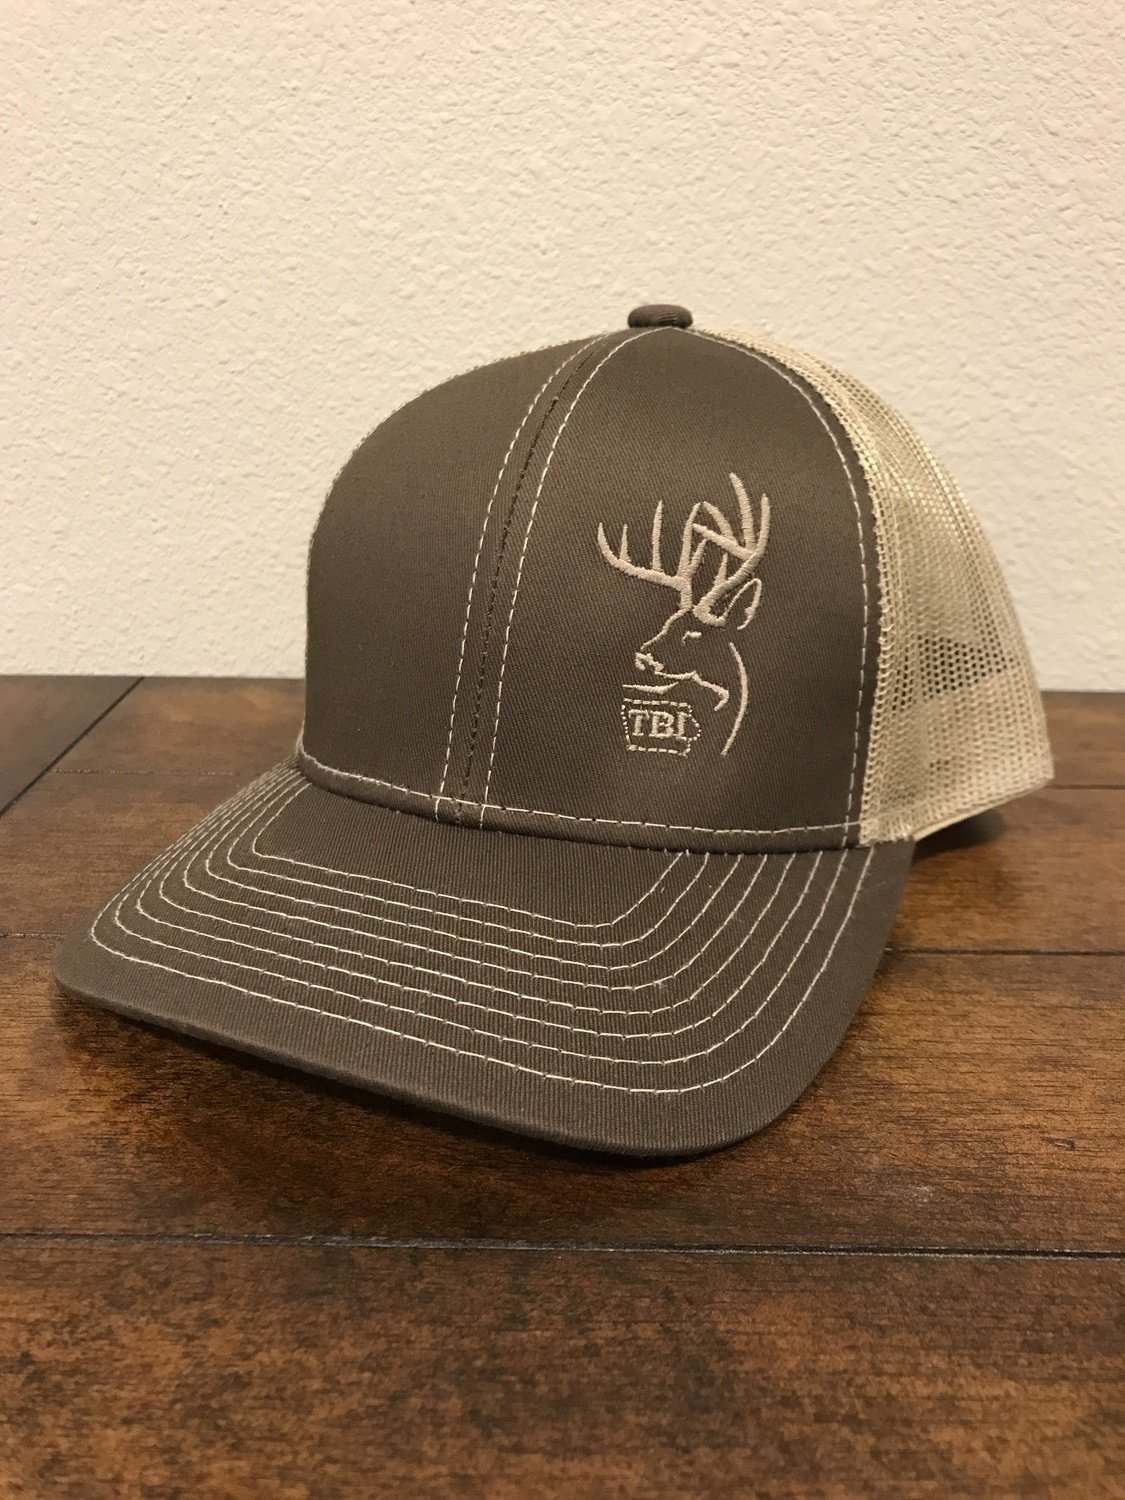 Tan / Brown TBI Hat